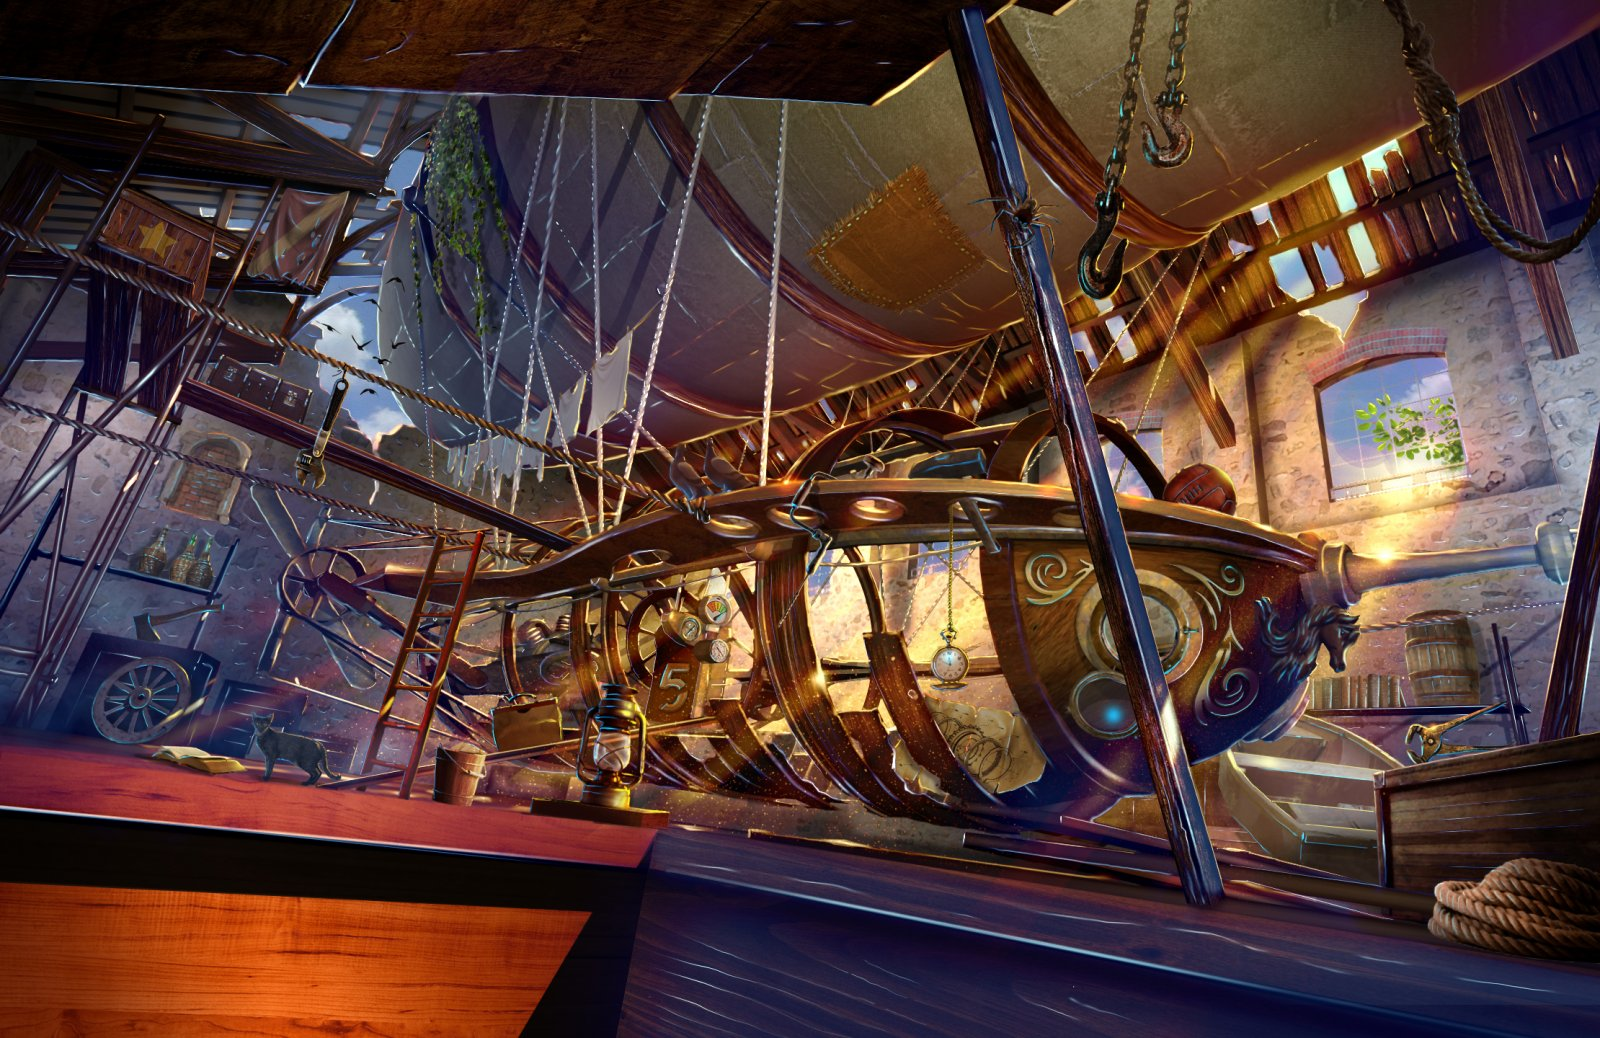 airship in the attic